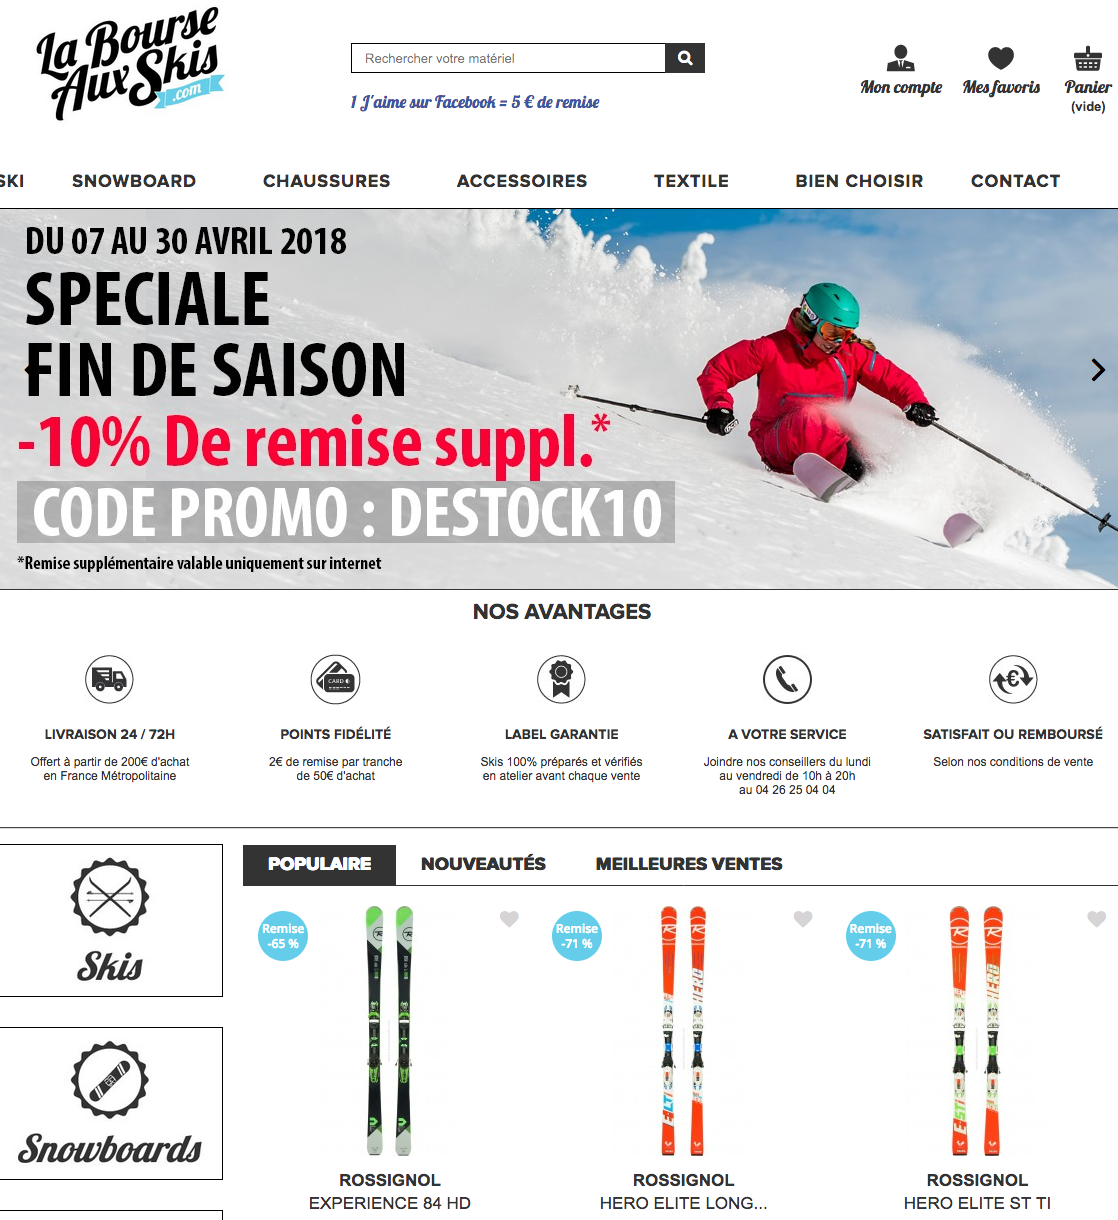 La Bourse aux skis - site internet